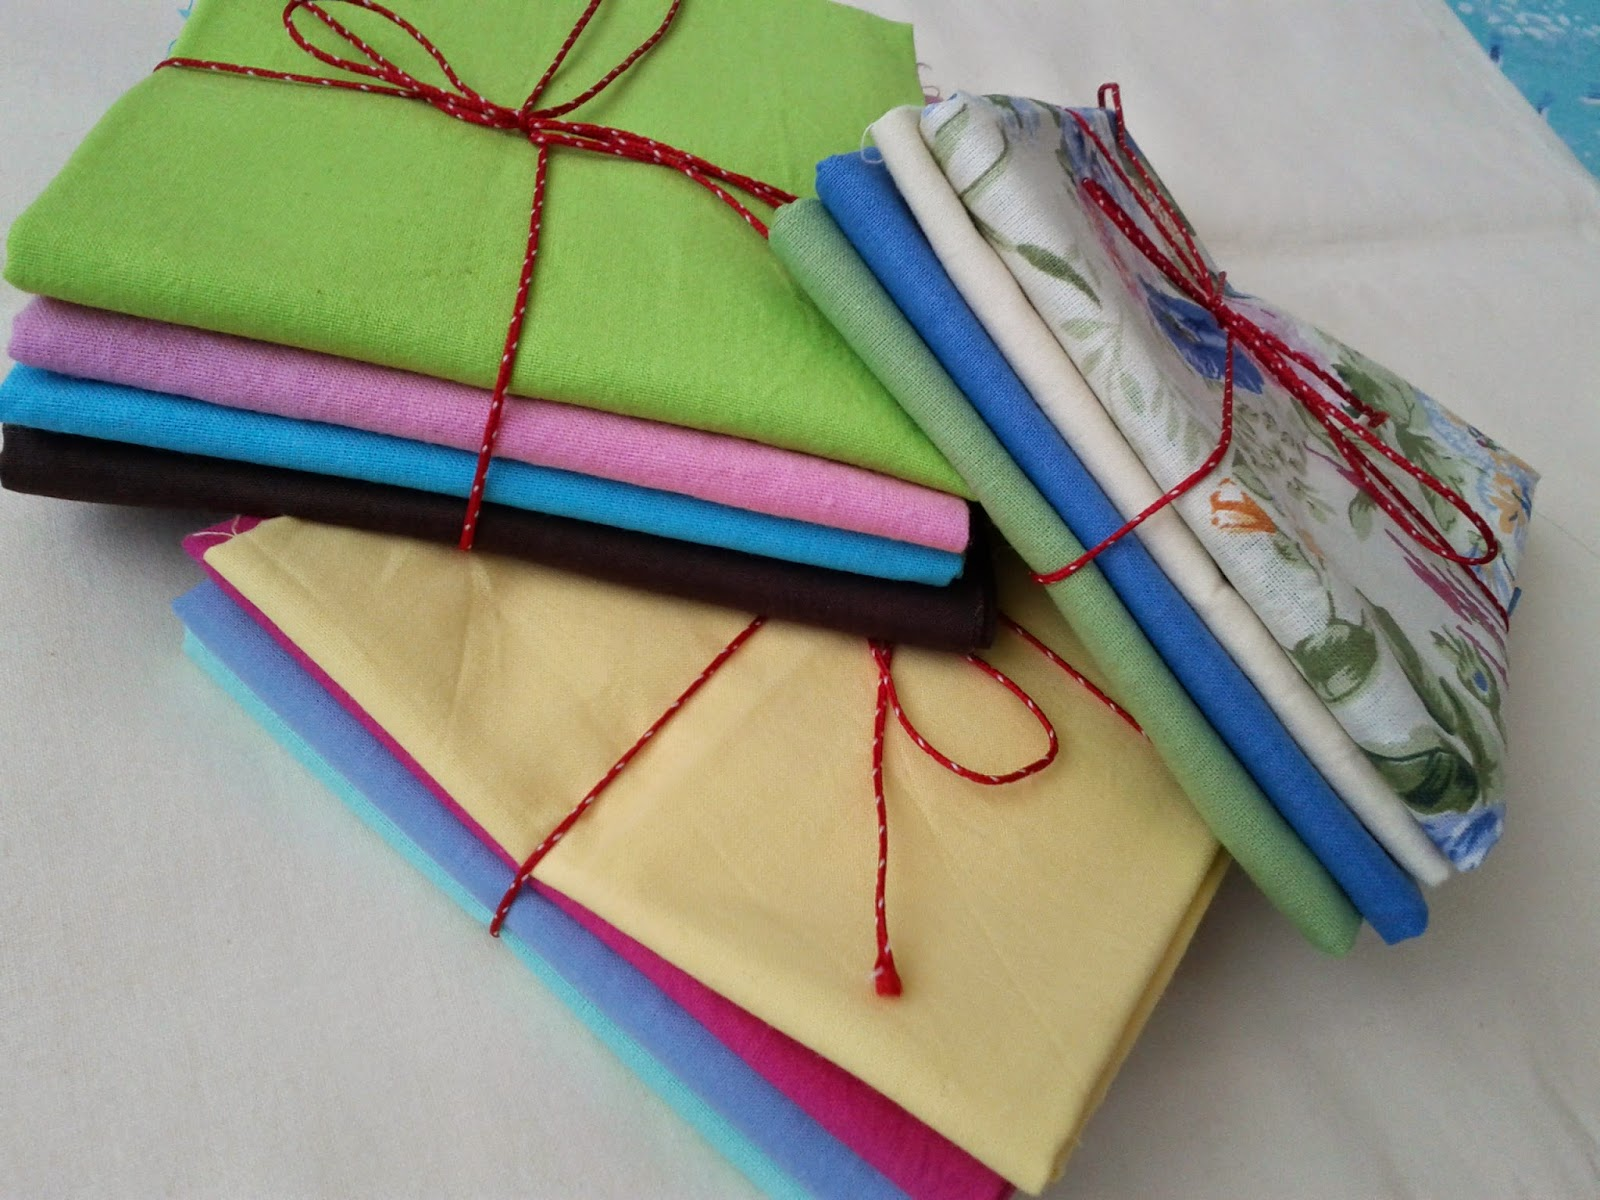 fat quarter bundles for my brand new quilting supply shop!